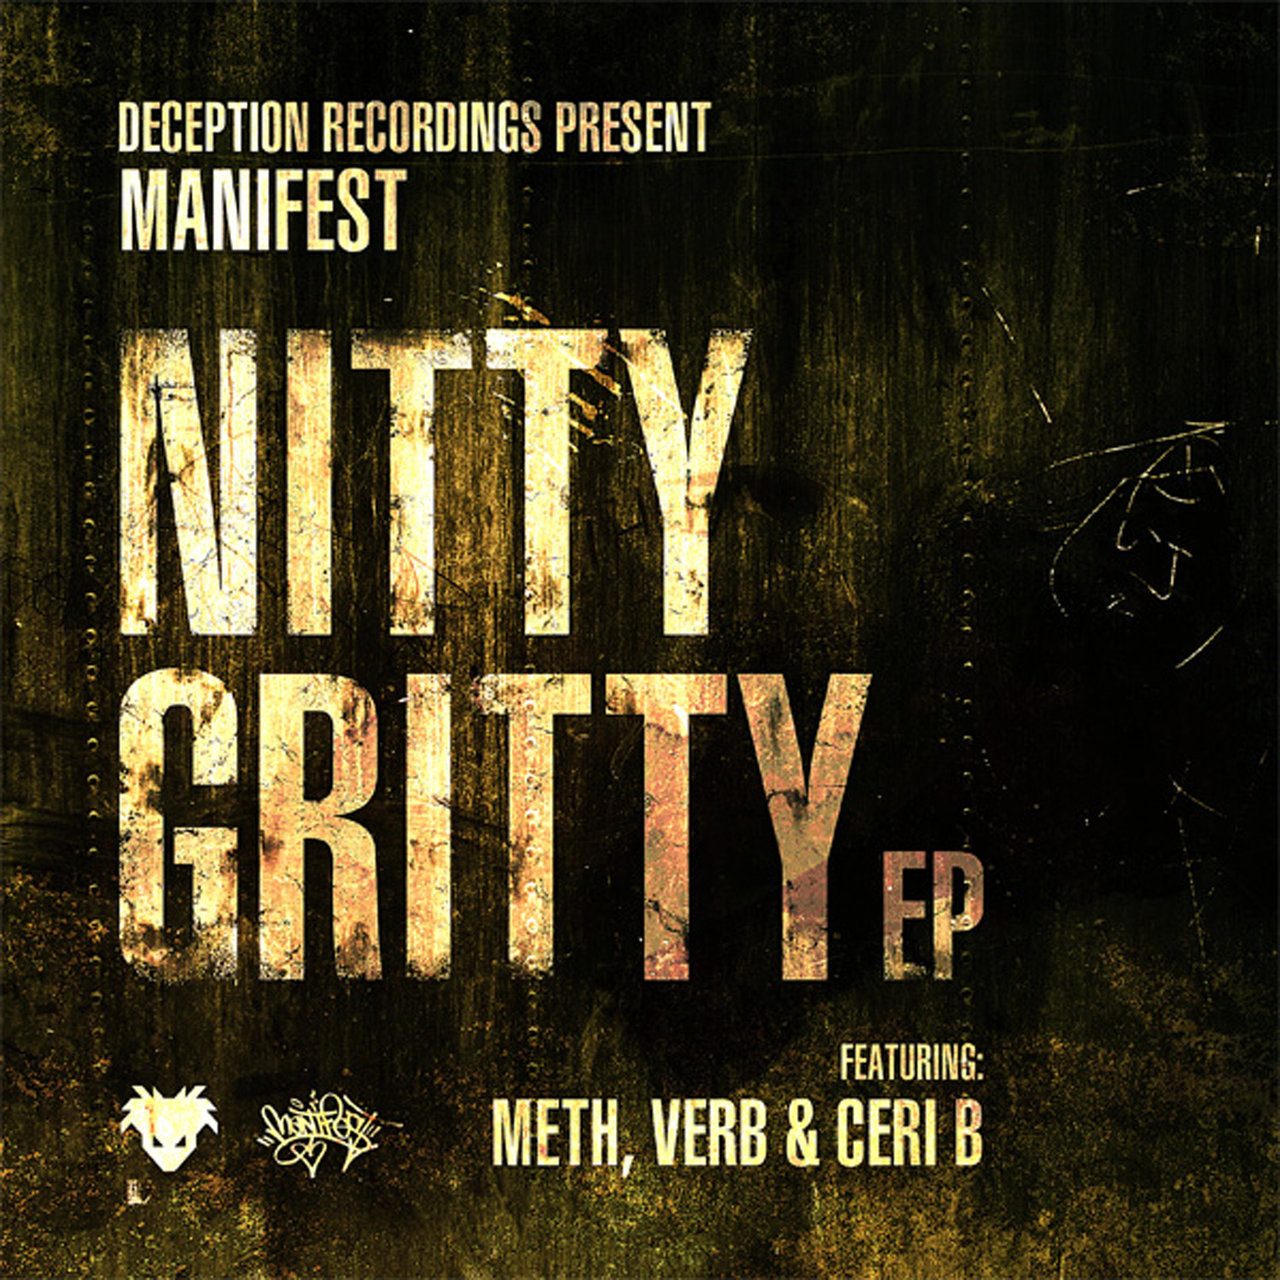 Nitty Gritty EP